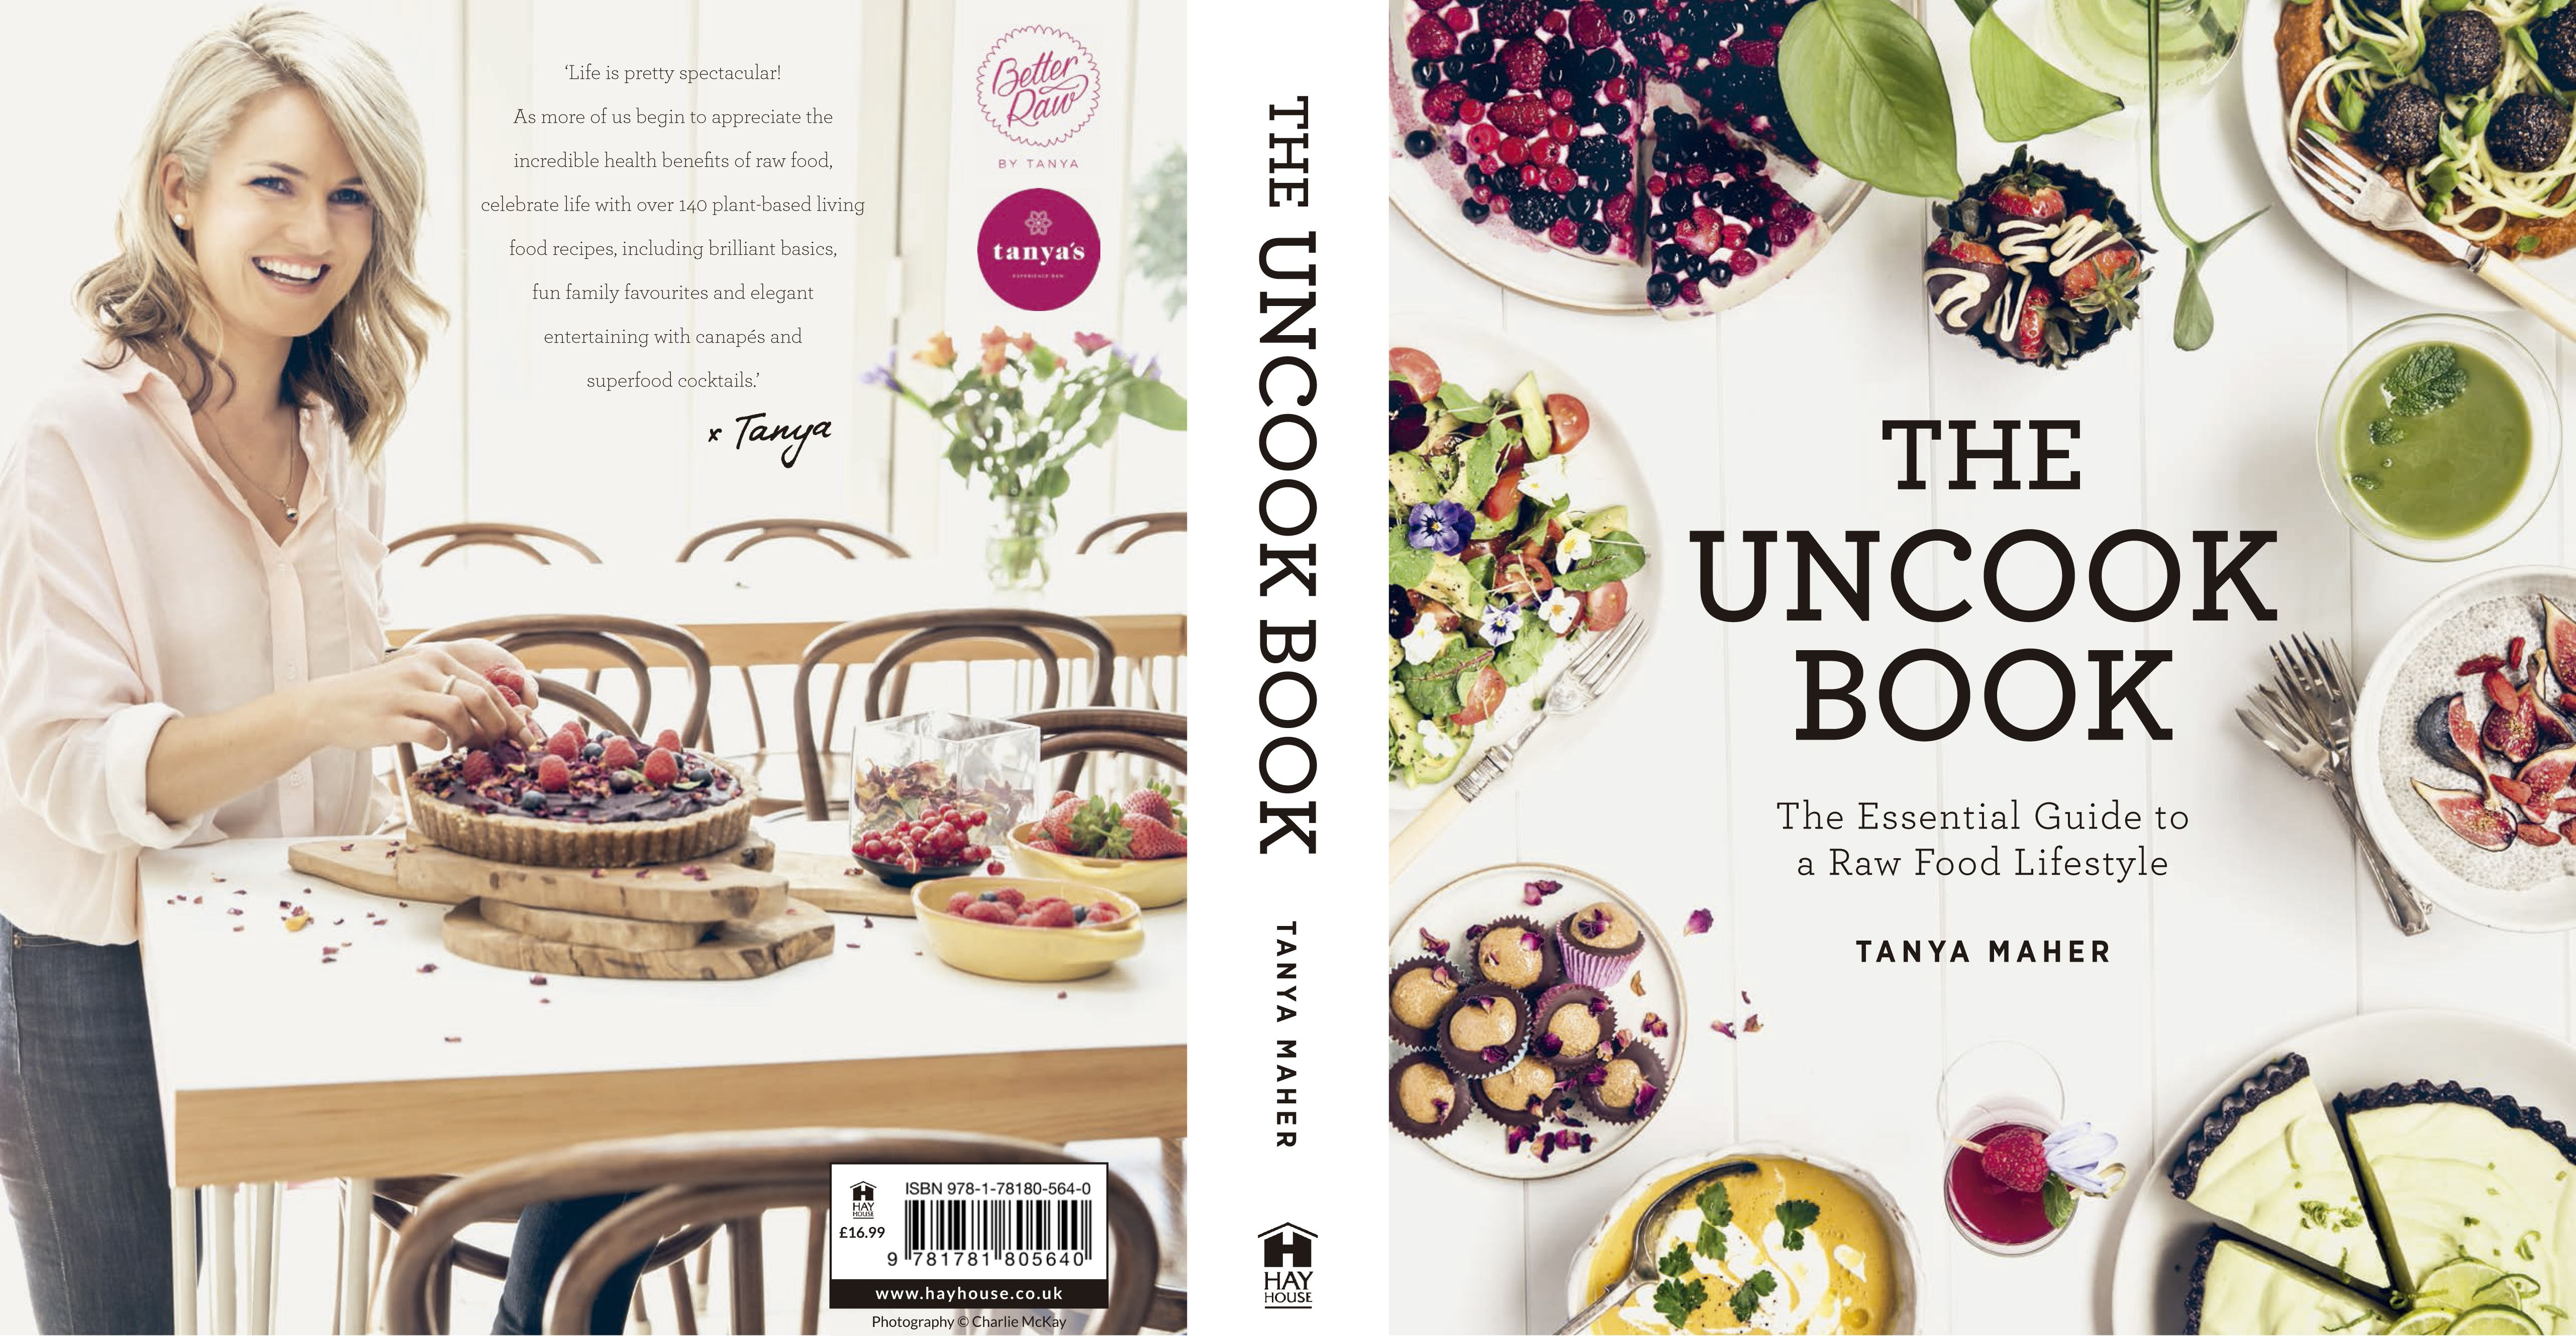 The uncook book the essential guide to a raw food lifestyle my the uncook book the essential guide to a raw food lifestyle my first published book is now out worldwide you can buy it where good cook books are sold forumfinder Images